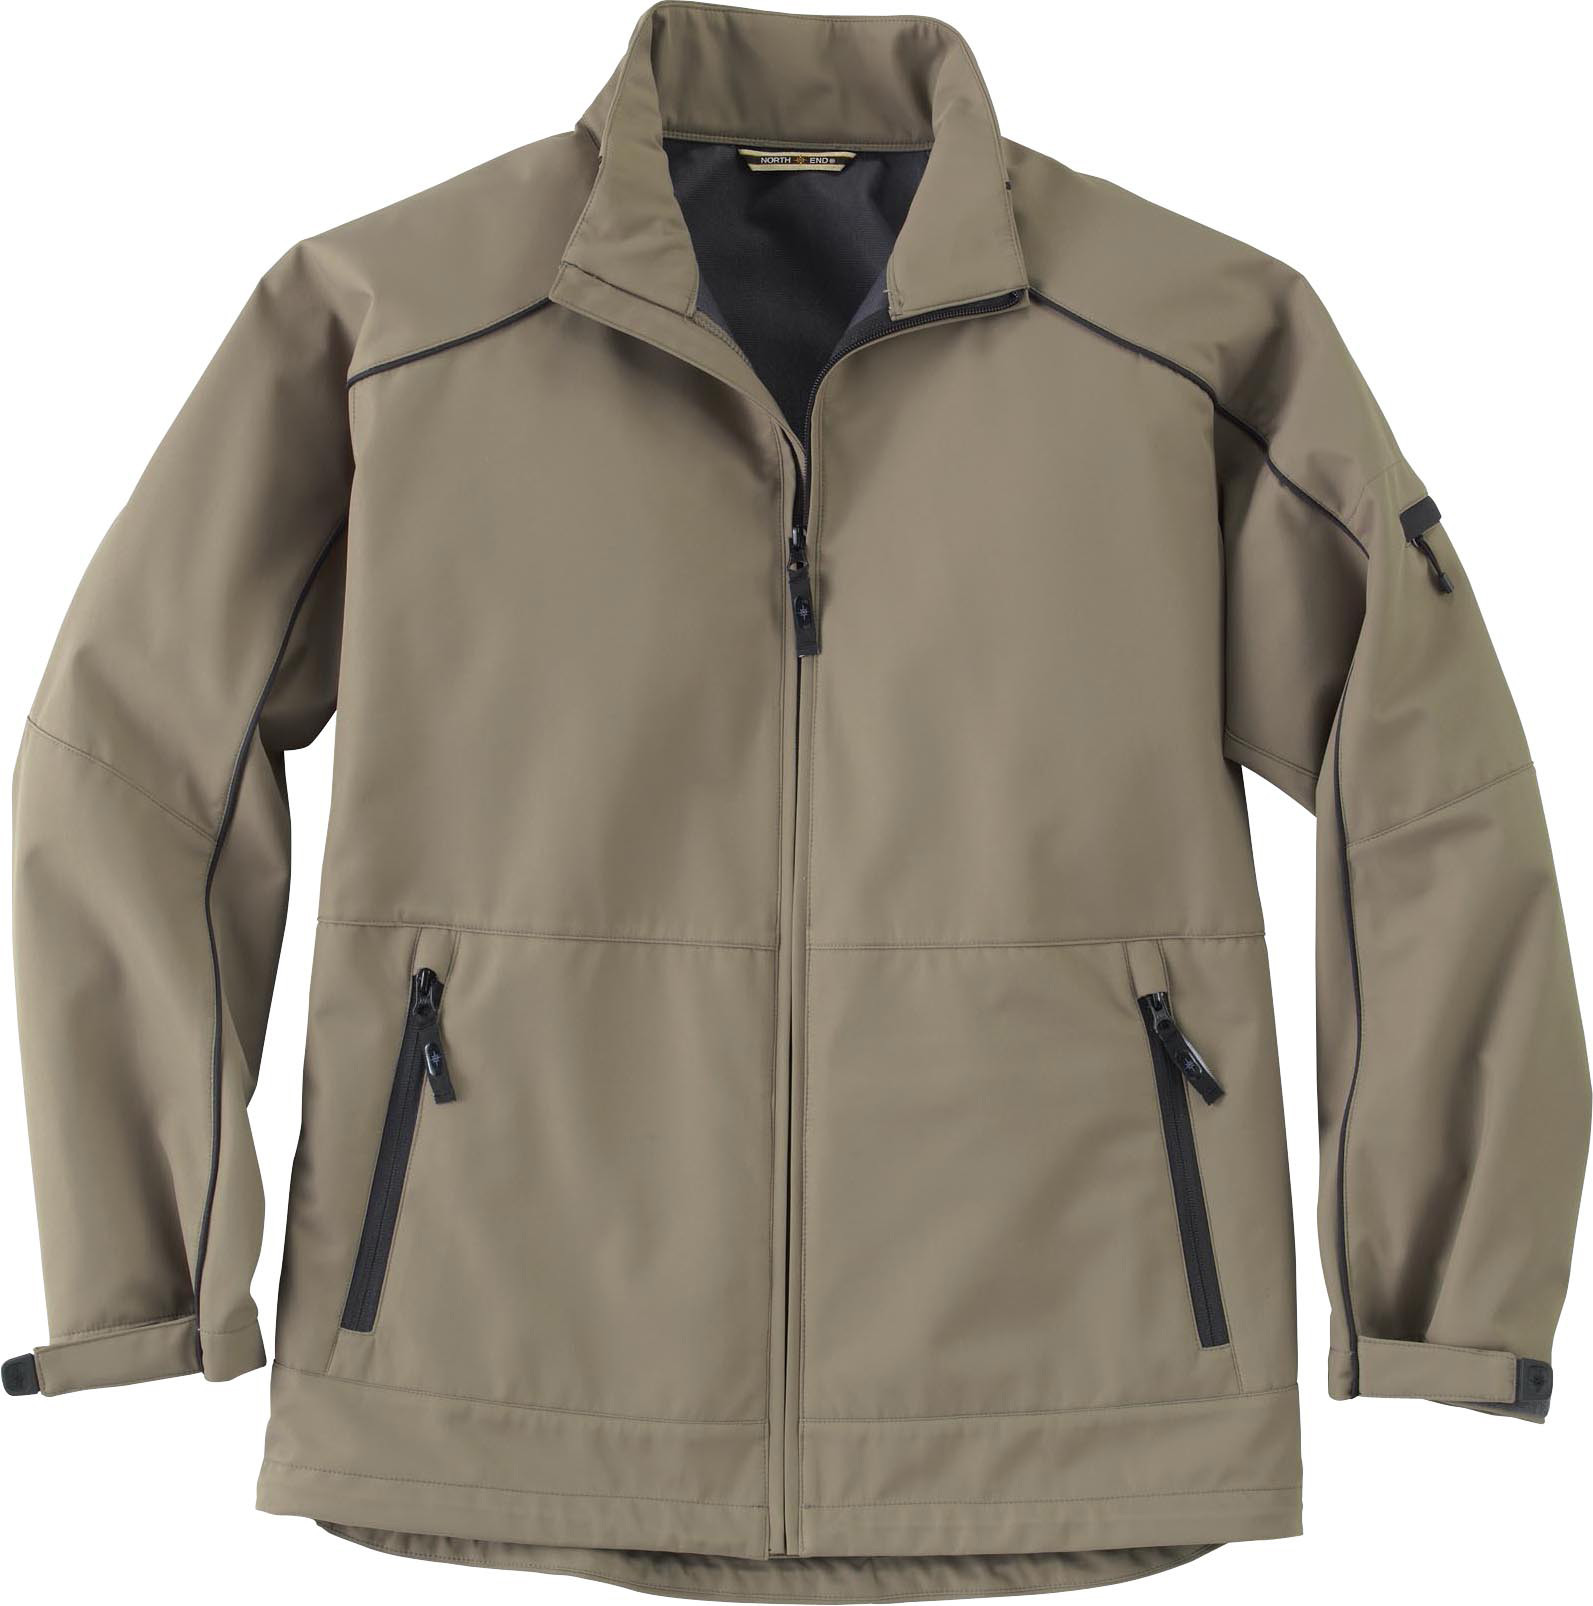 Ash City Performance Jackets 88121 - Men's Performance ...